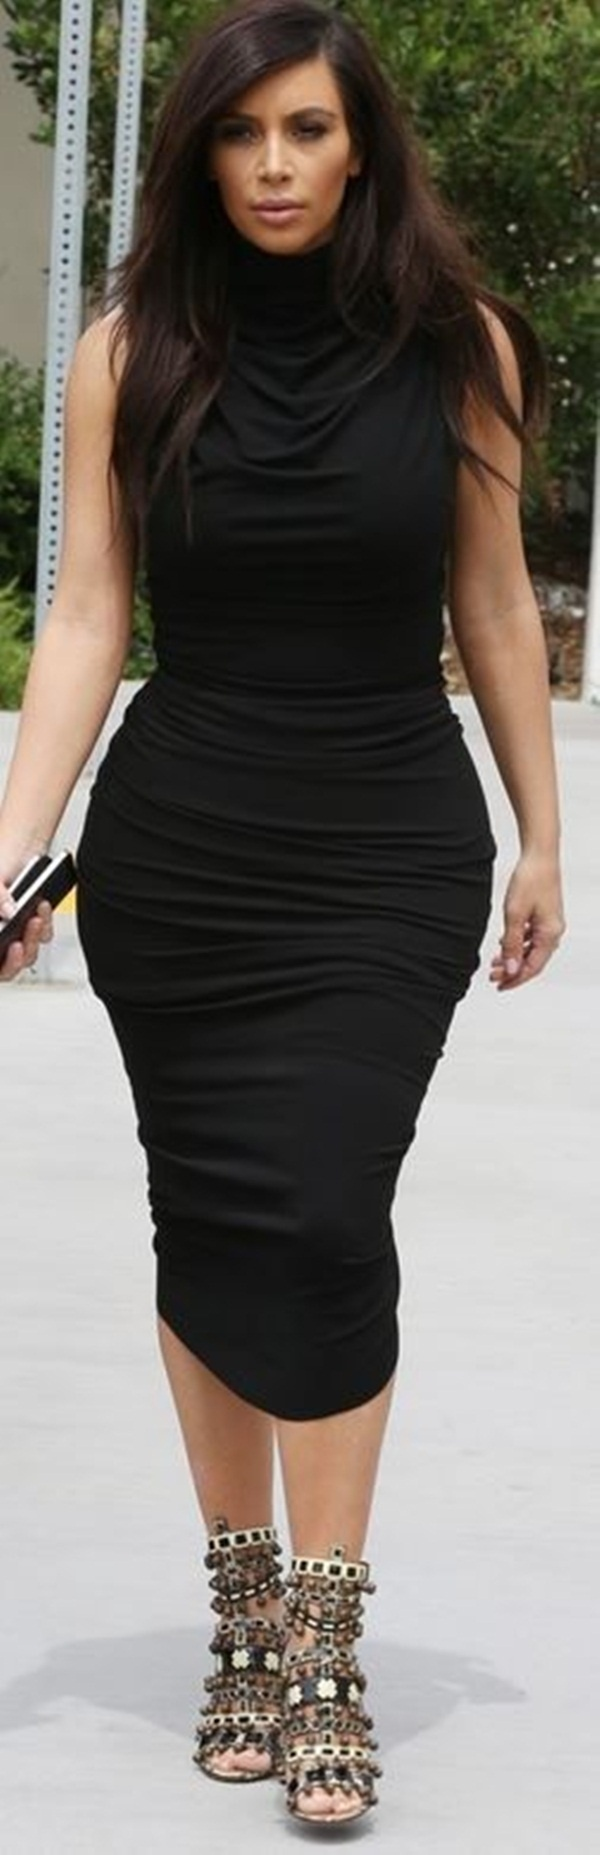 curvy dresses for girls (140)